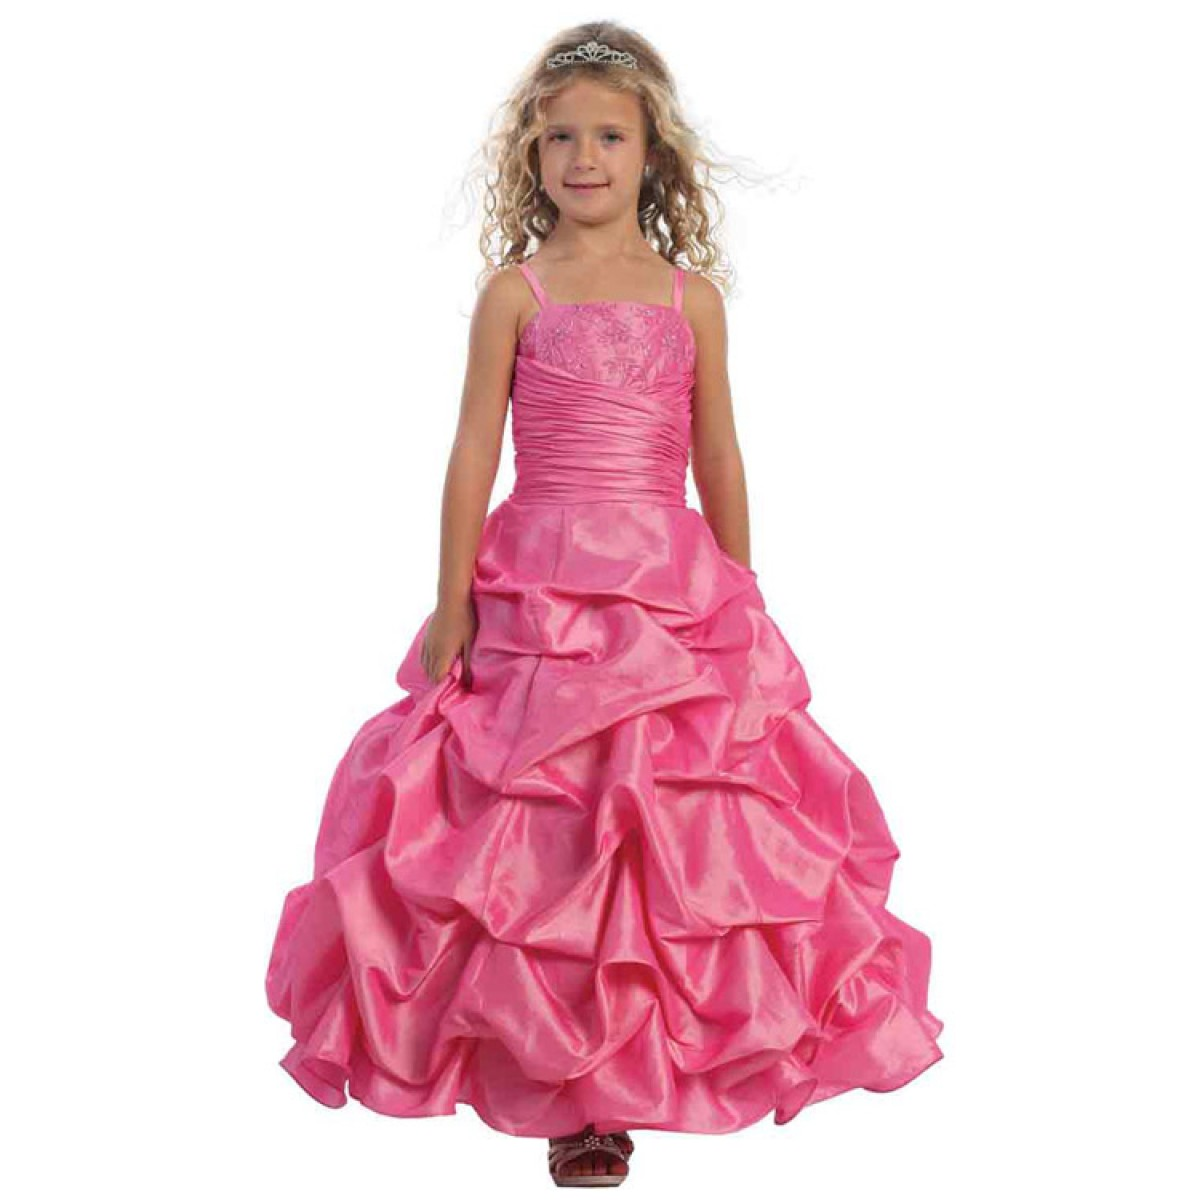 Stunning Taffeta Pick Up Full Length Dress With Beaded Bodice And